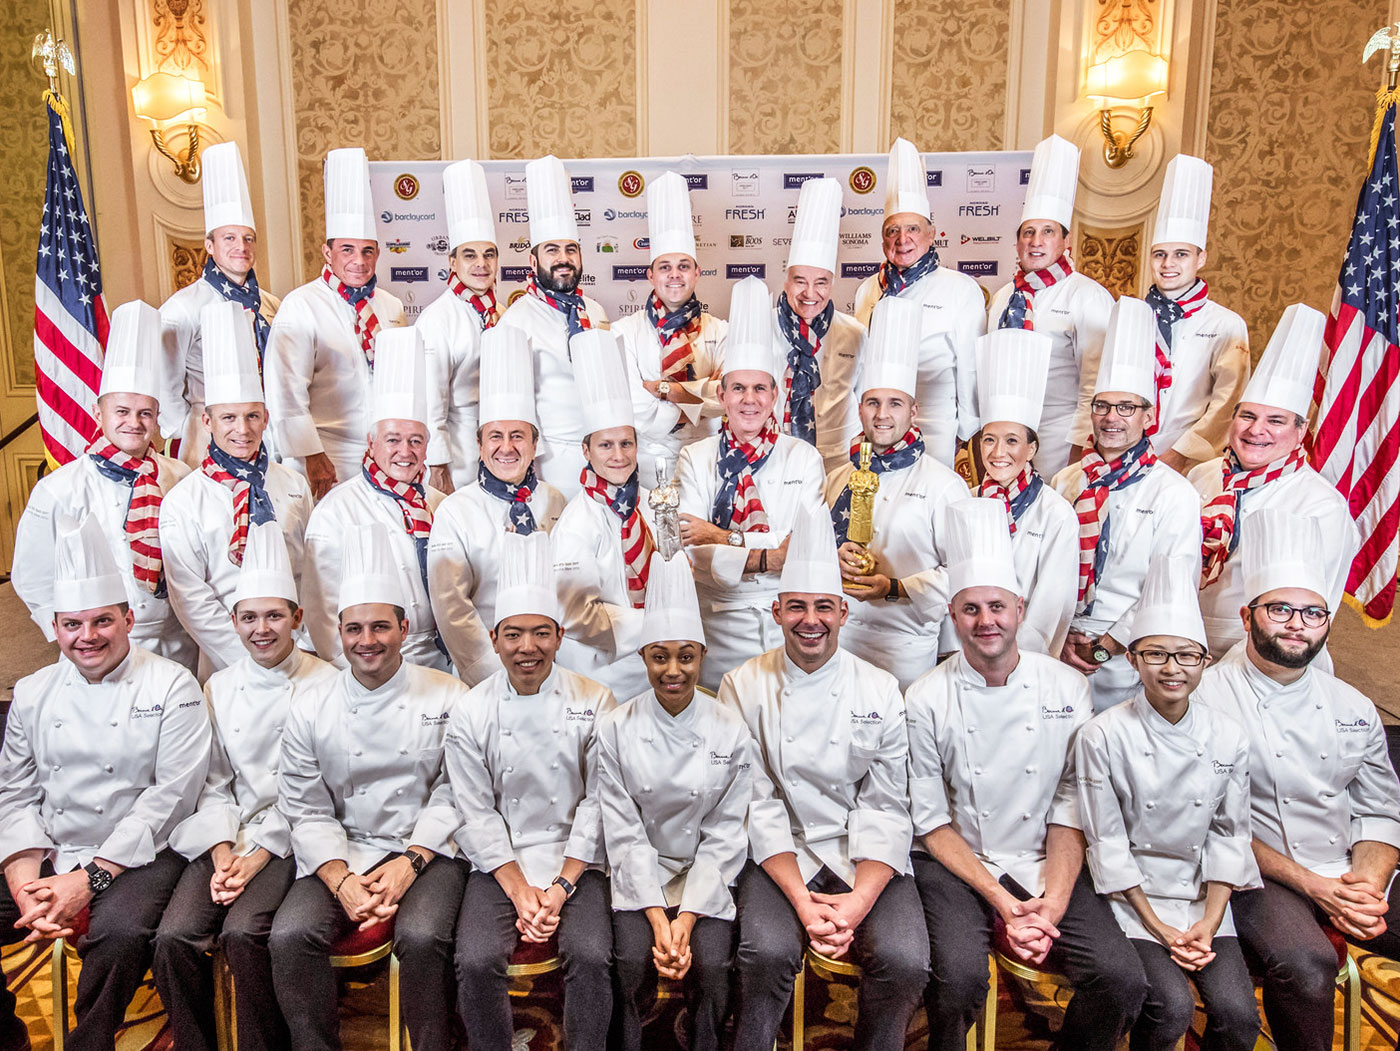 bocuse-dor-usa-team-FT-BLOG1117.jpg